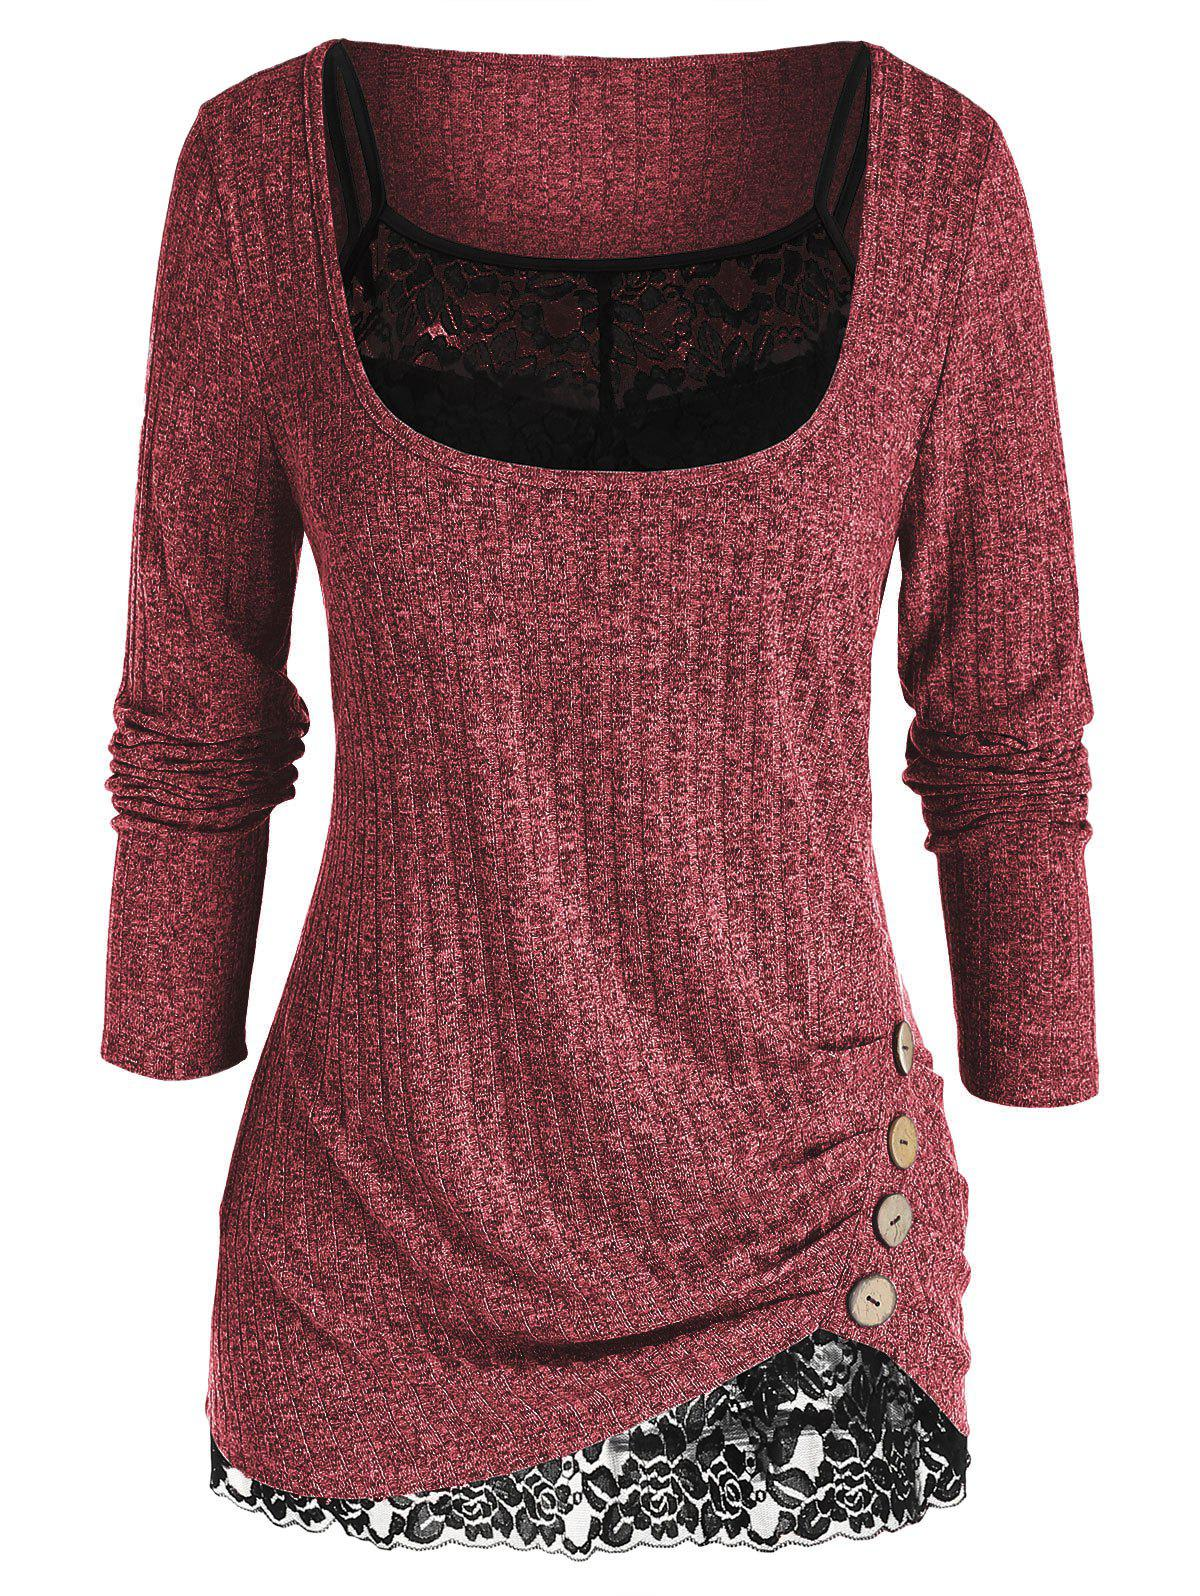 Plus Size Ruched U Neck Sweater with Lace Cami Top Set - DEEP RED 5X